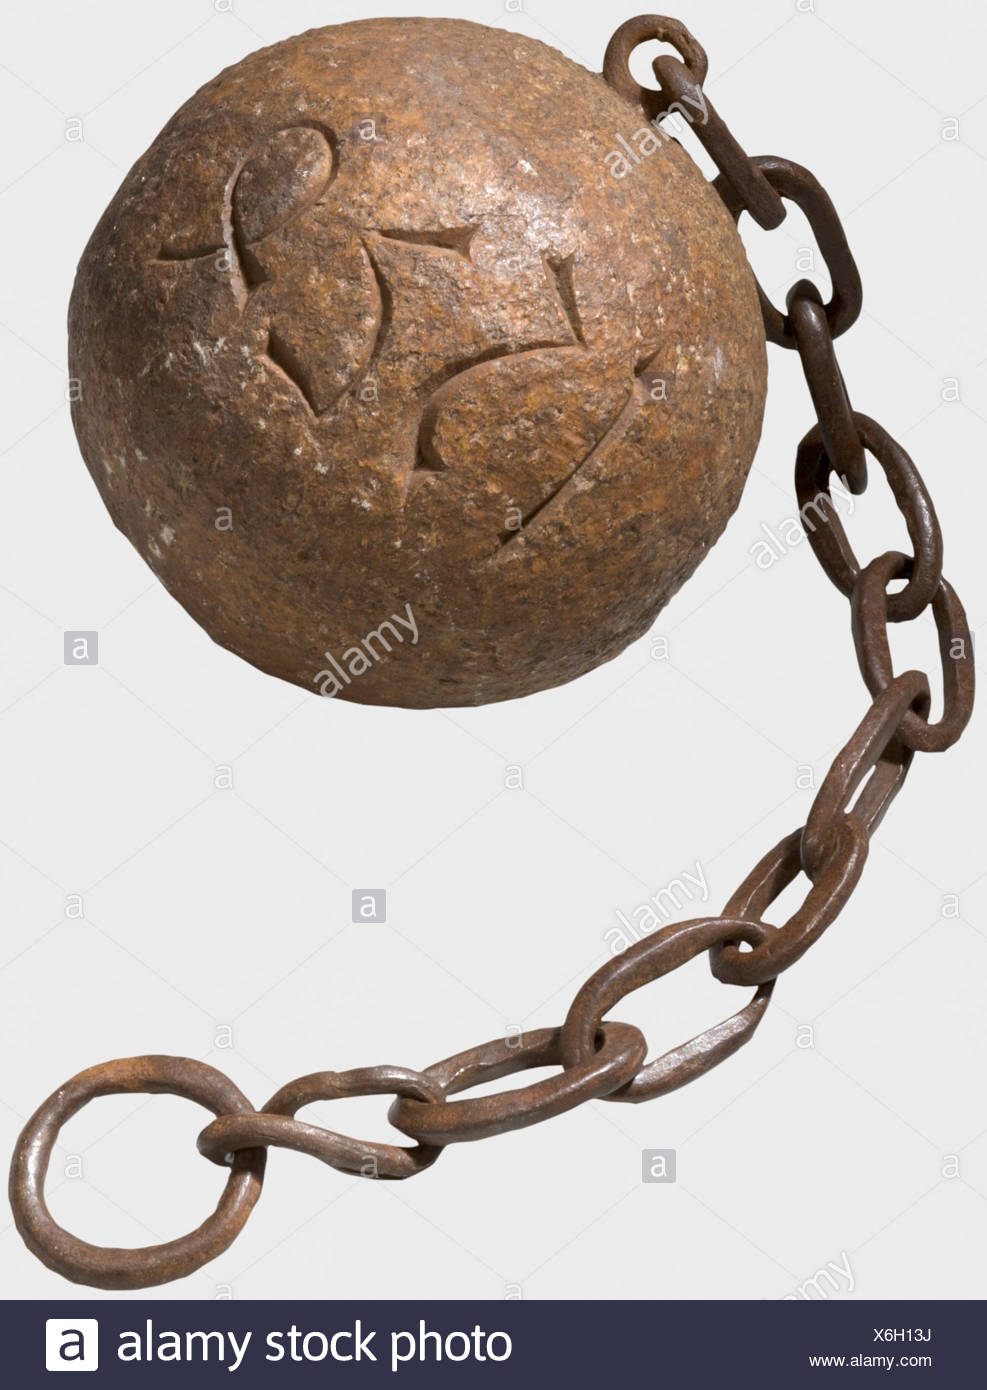 Ball torture device